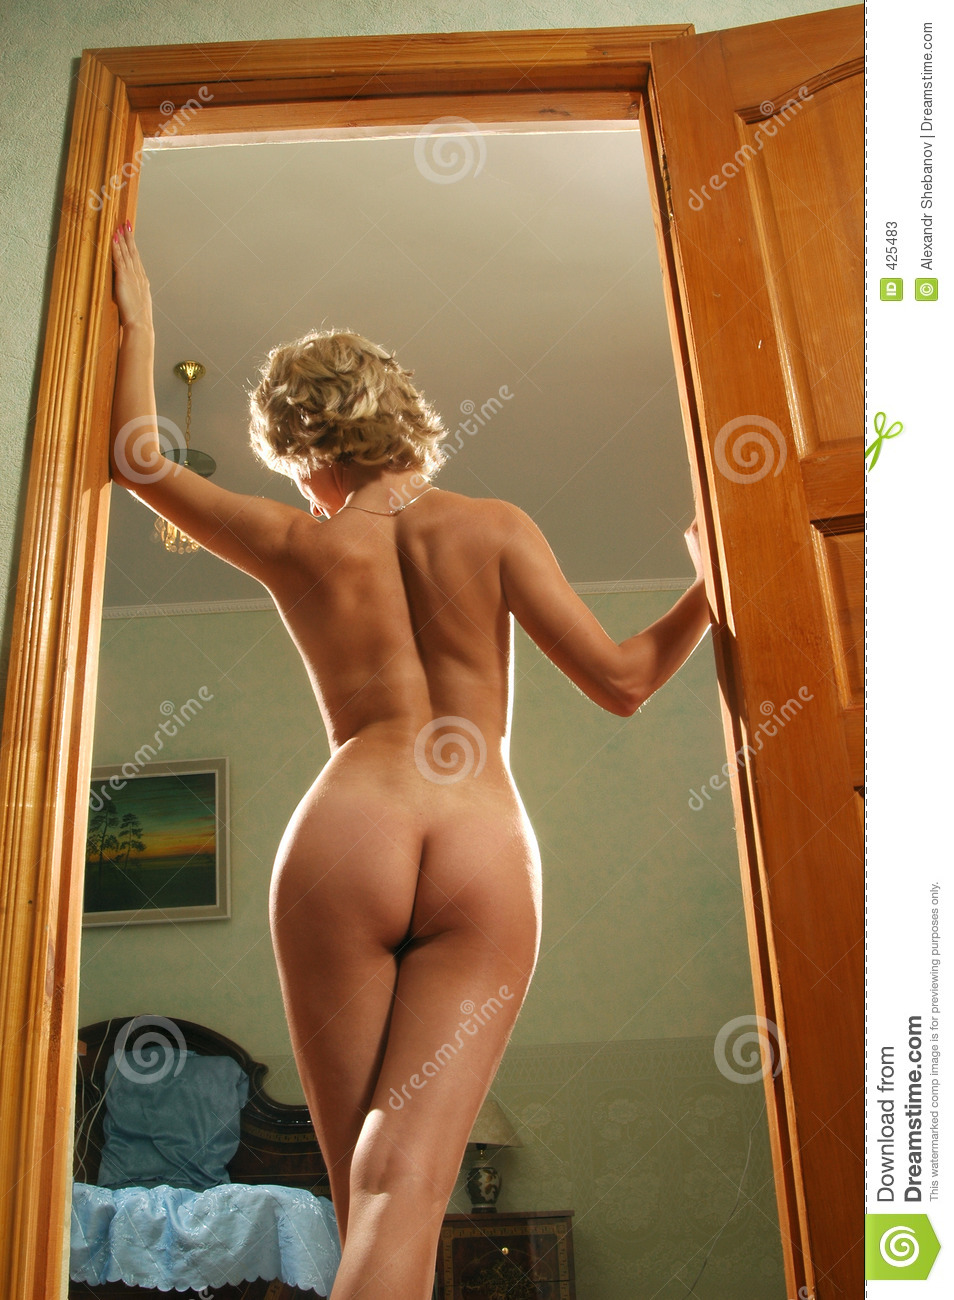 Nude standing door, pic porno indonesia